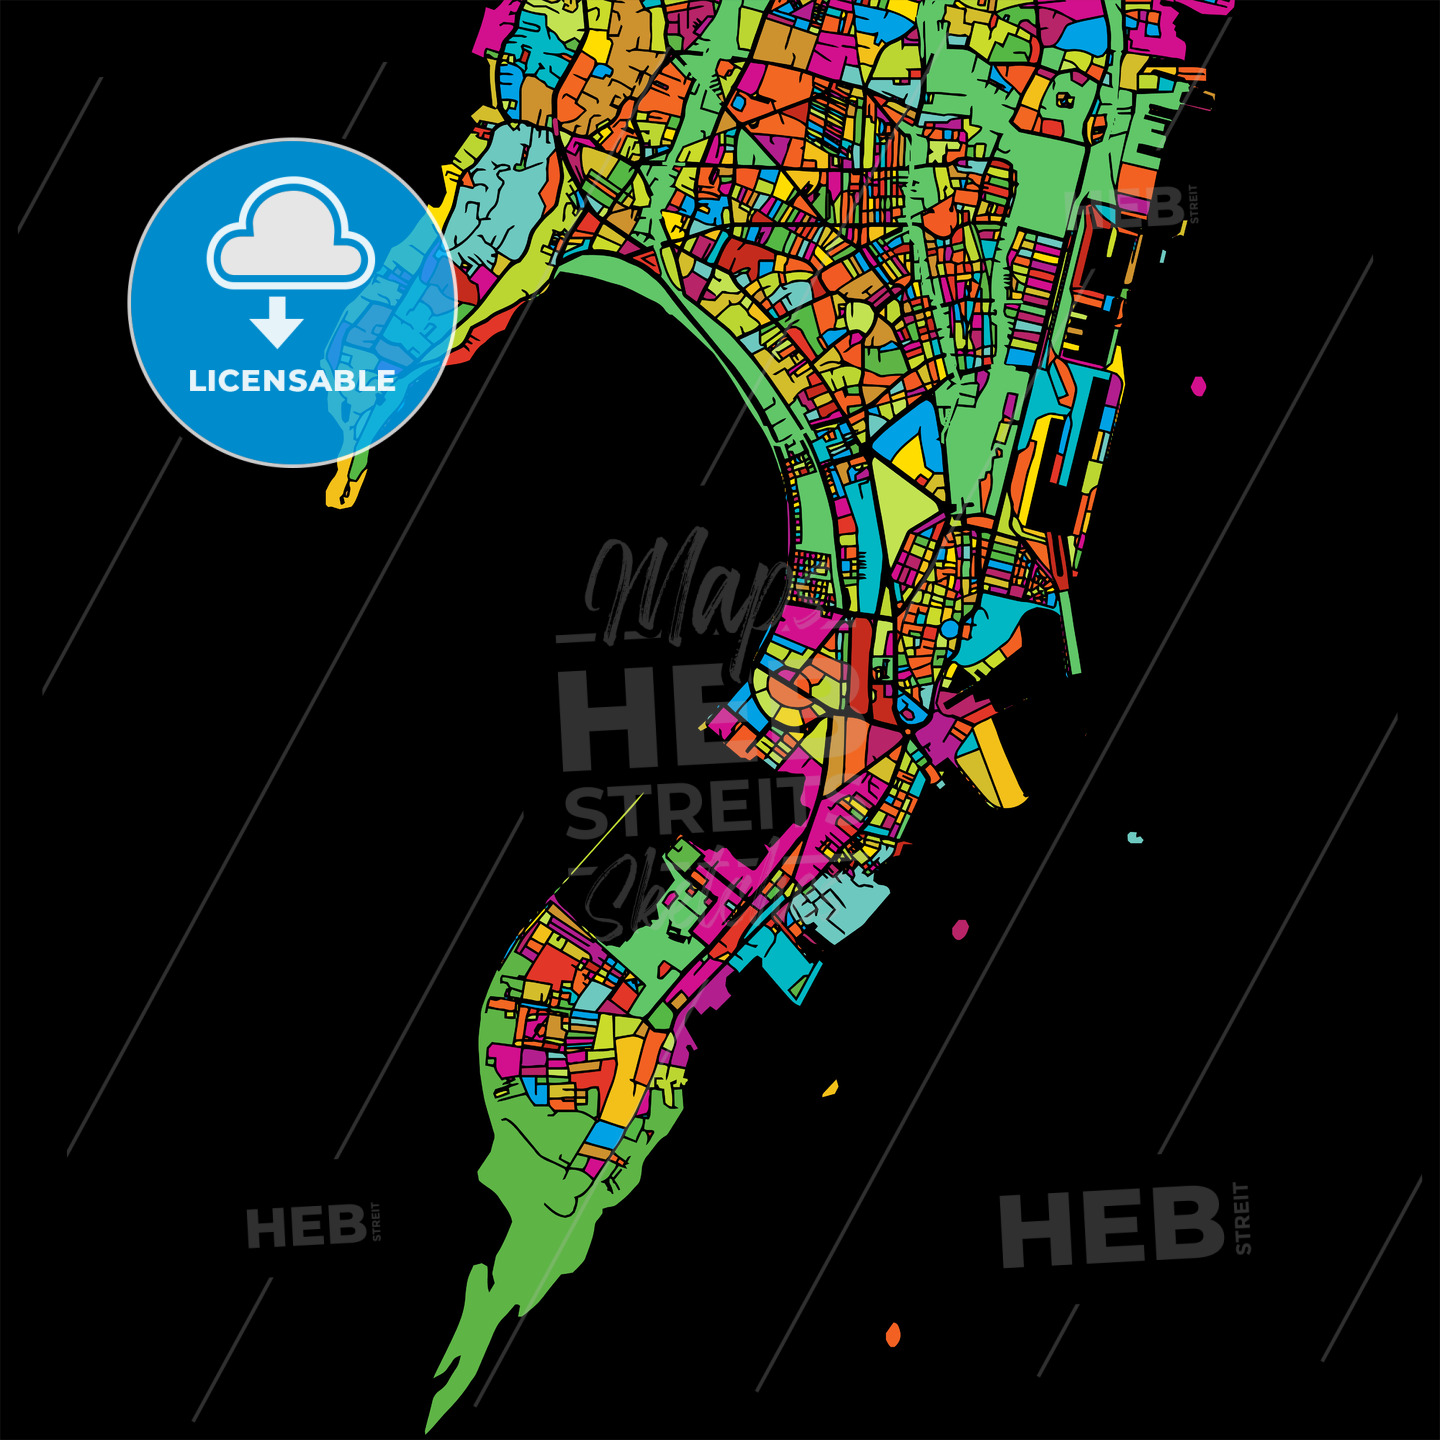 Mumbai, India, Colorful Vector Map on Black - HEBSTREIT's Sketches